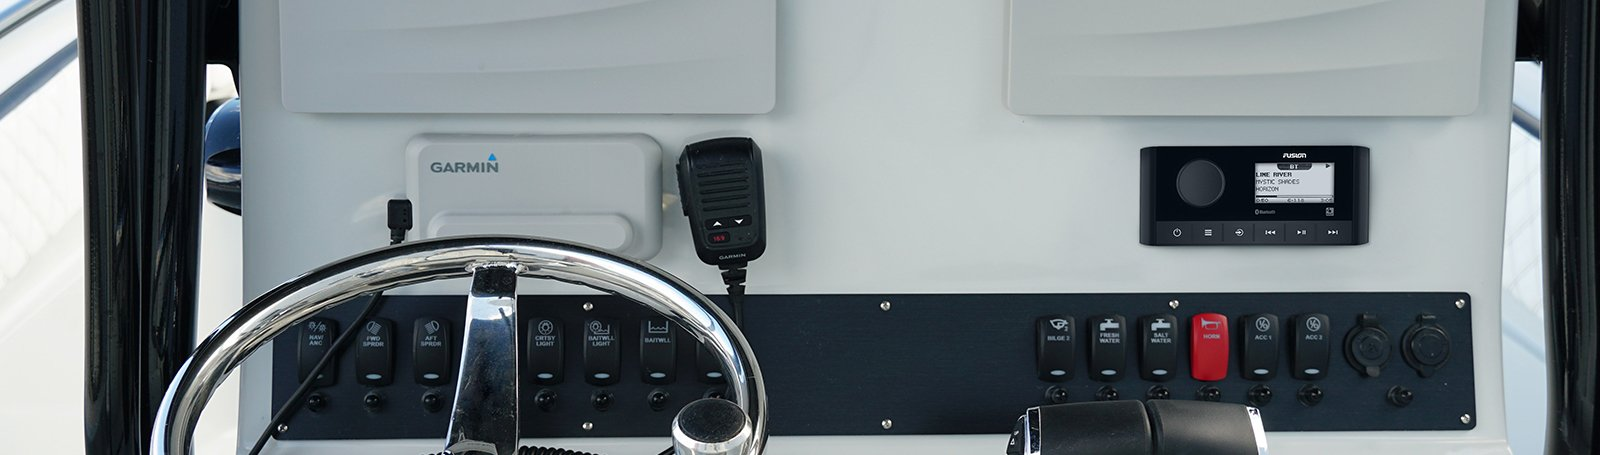 The Garmin Fusion MS RA60 installed onboard a vessel